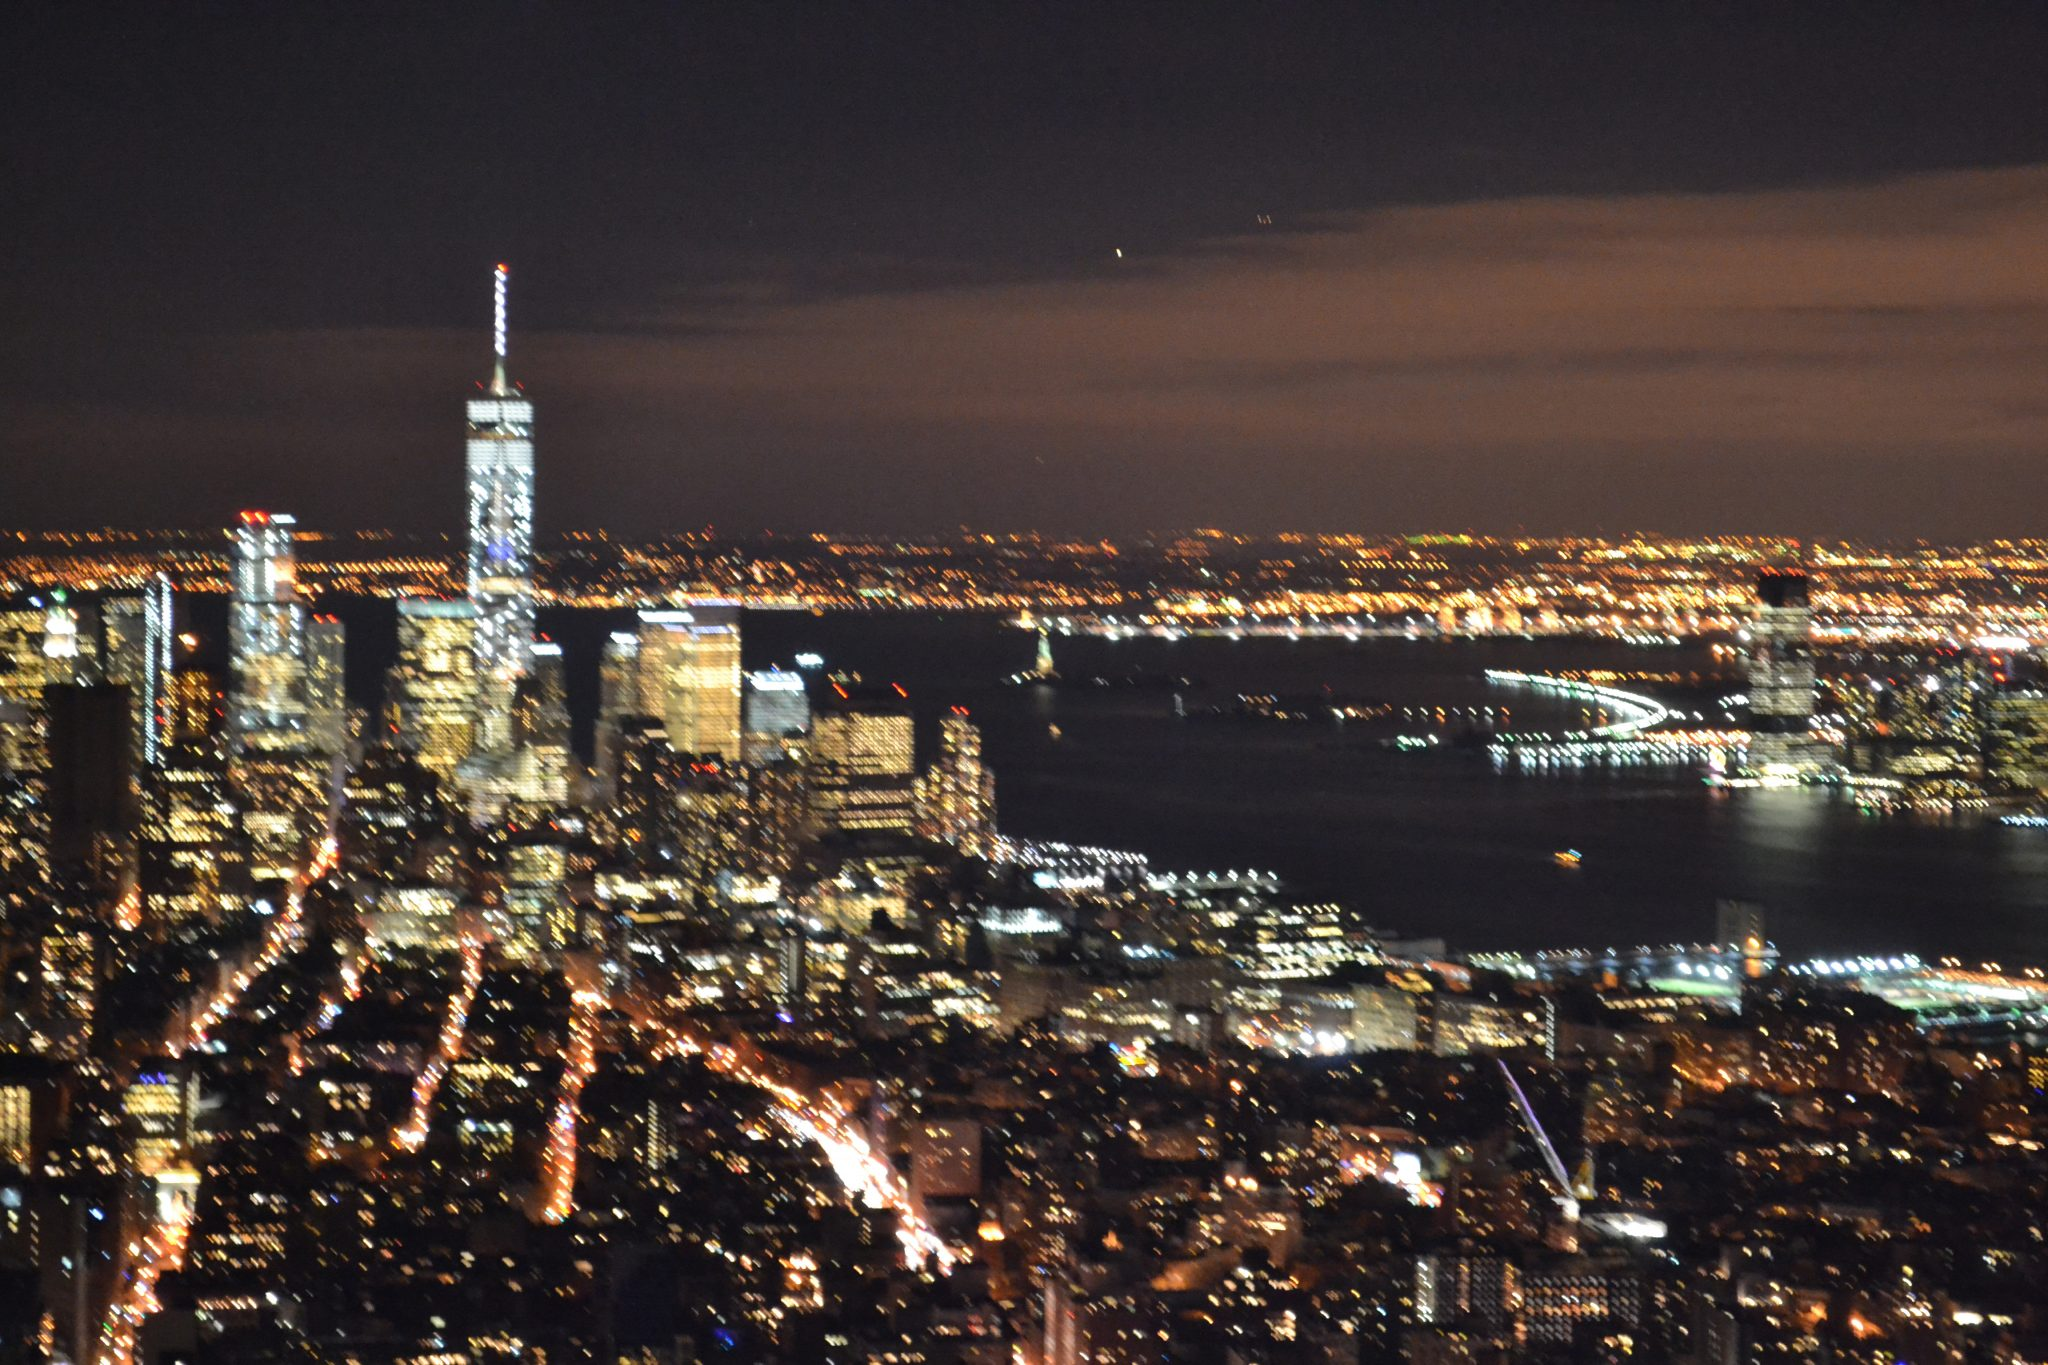 Eine Woche in New York: Rockefeller Center & Empire State Building